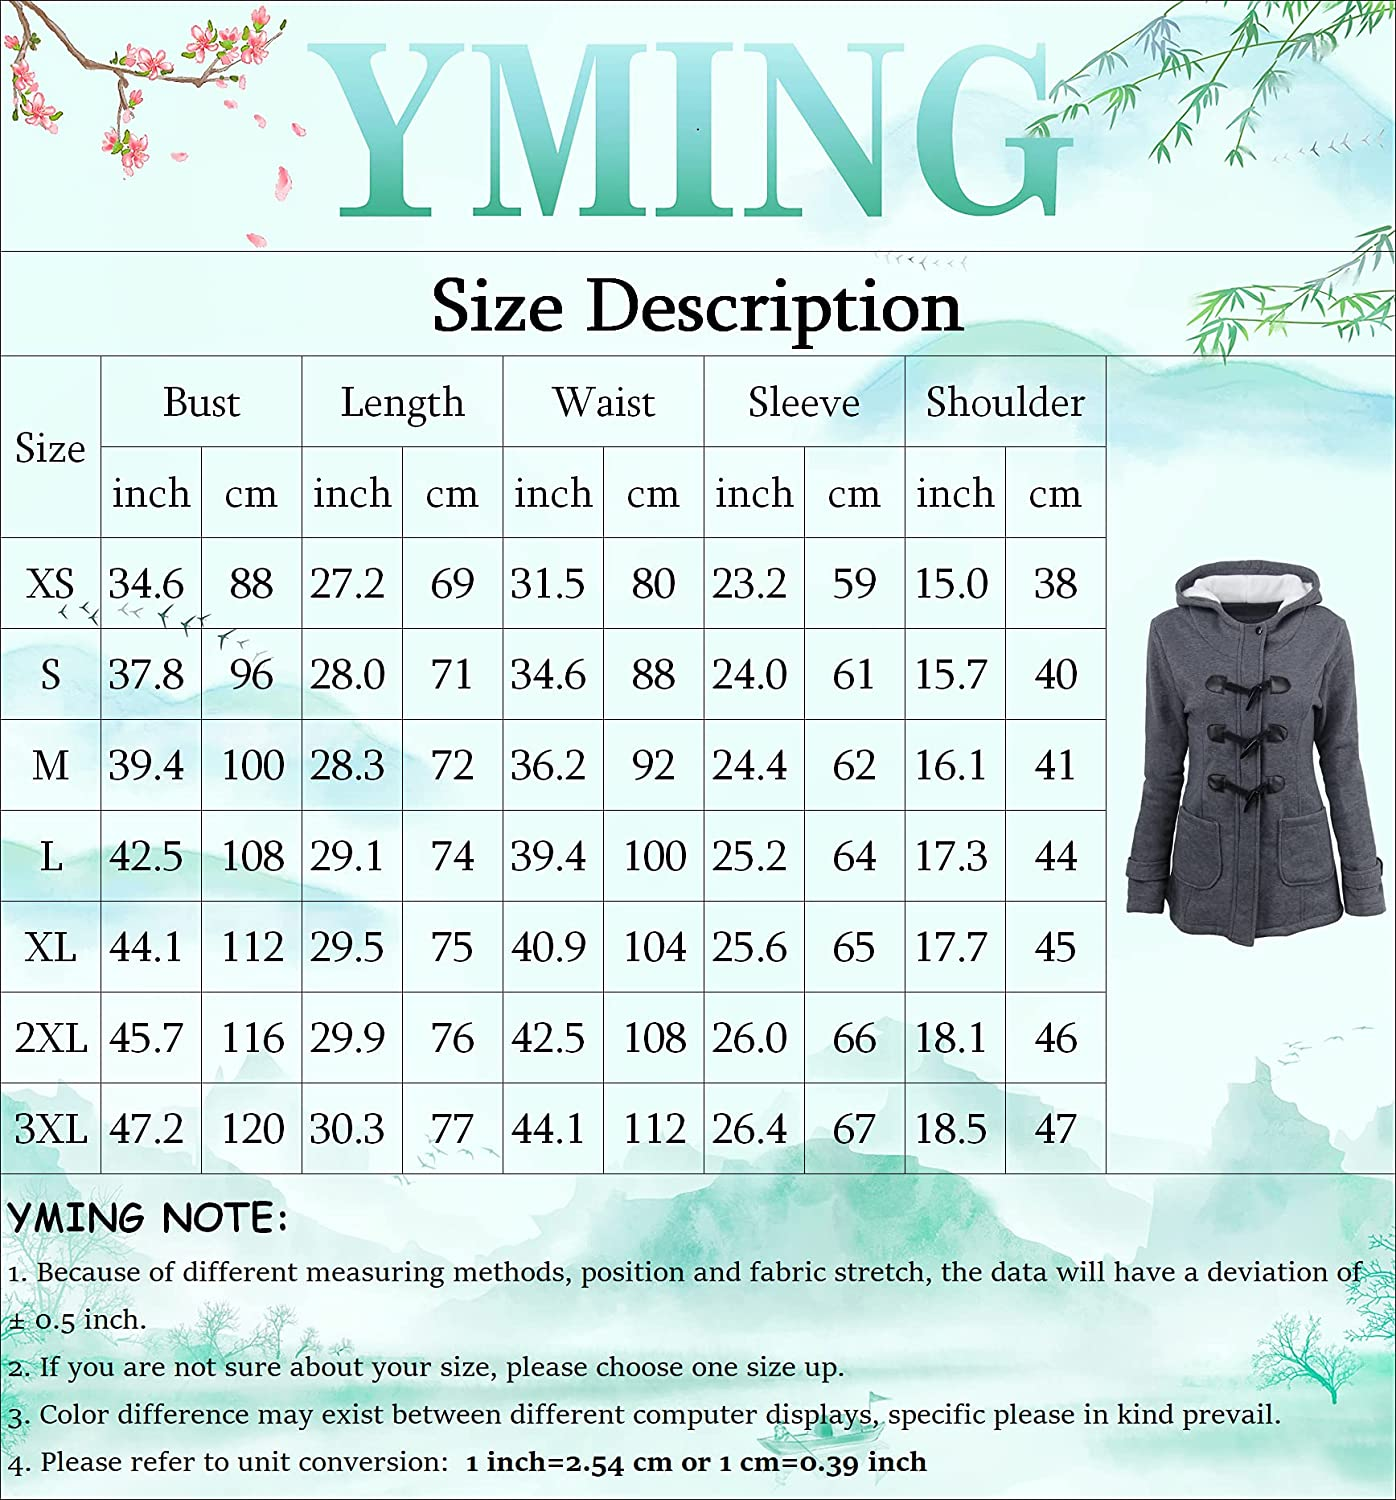 YMING Womens Winter Horn Button Jackets Warm Solid Color Pea Coat Classic Hooded Outwear Plus Size